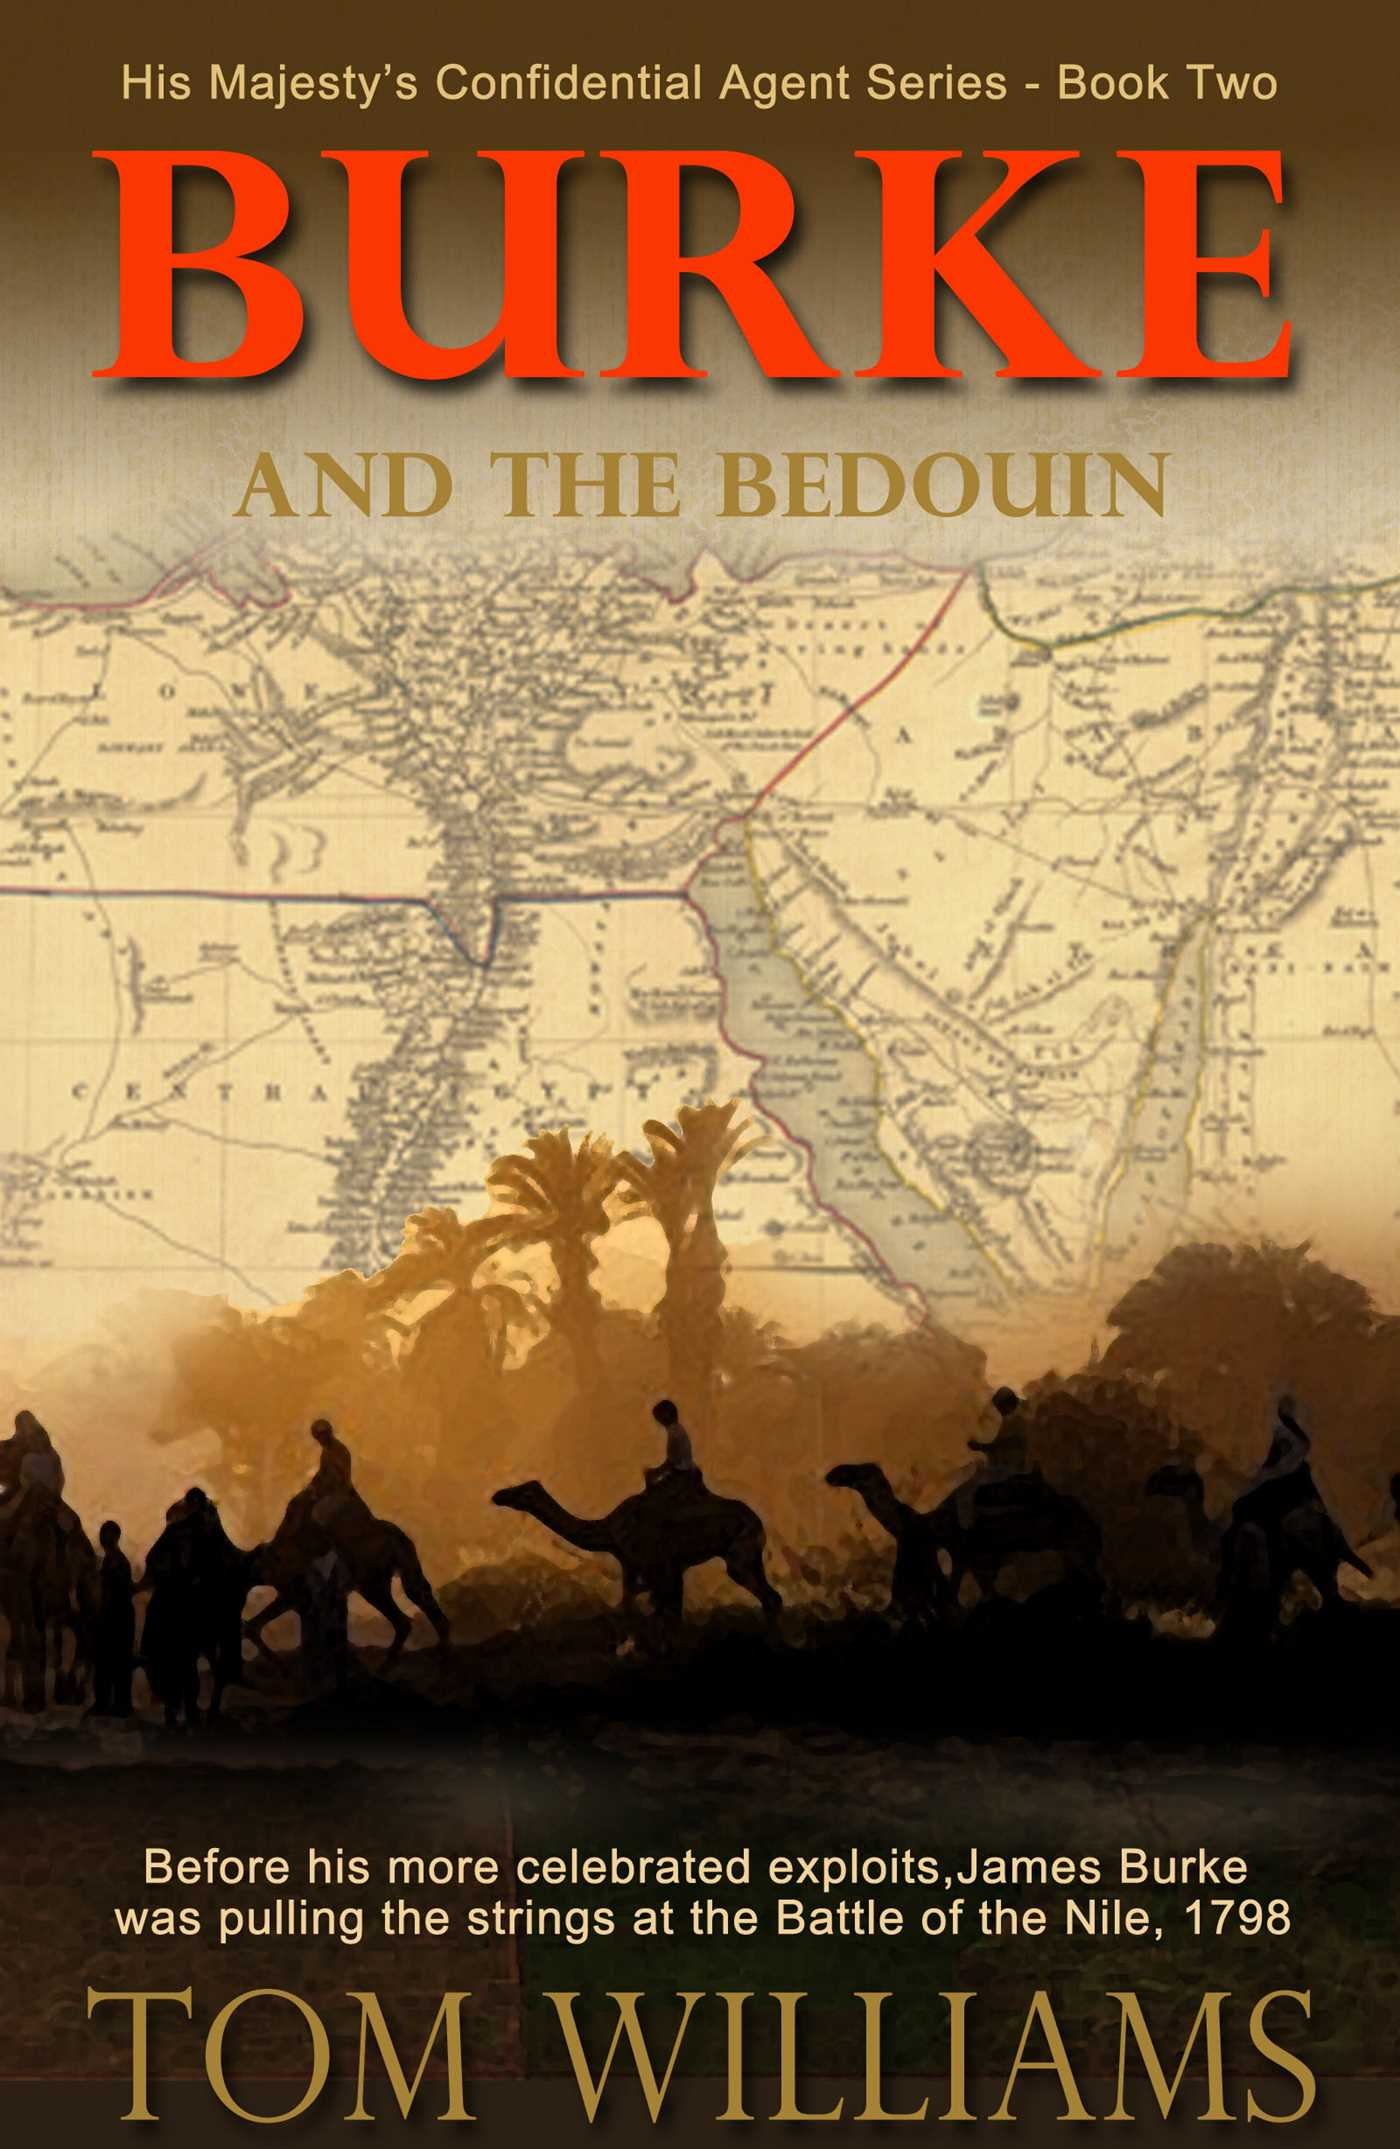 Burke and the bedouin 9781682990438 hr